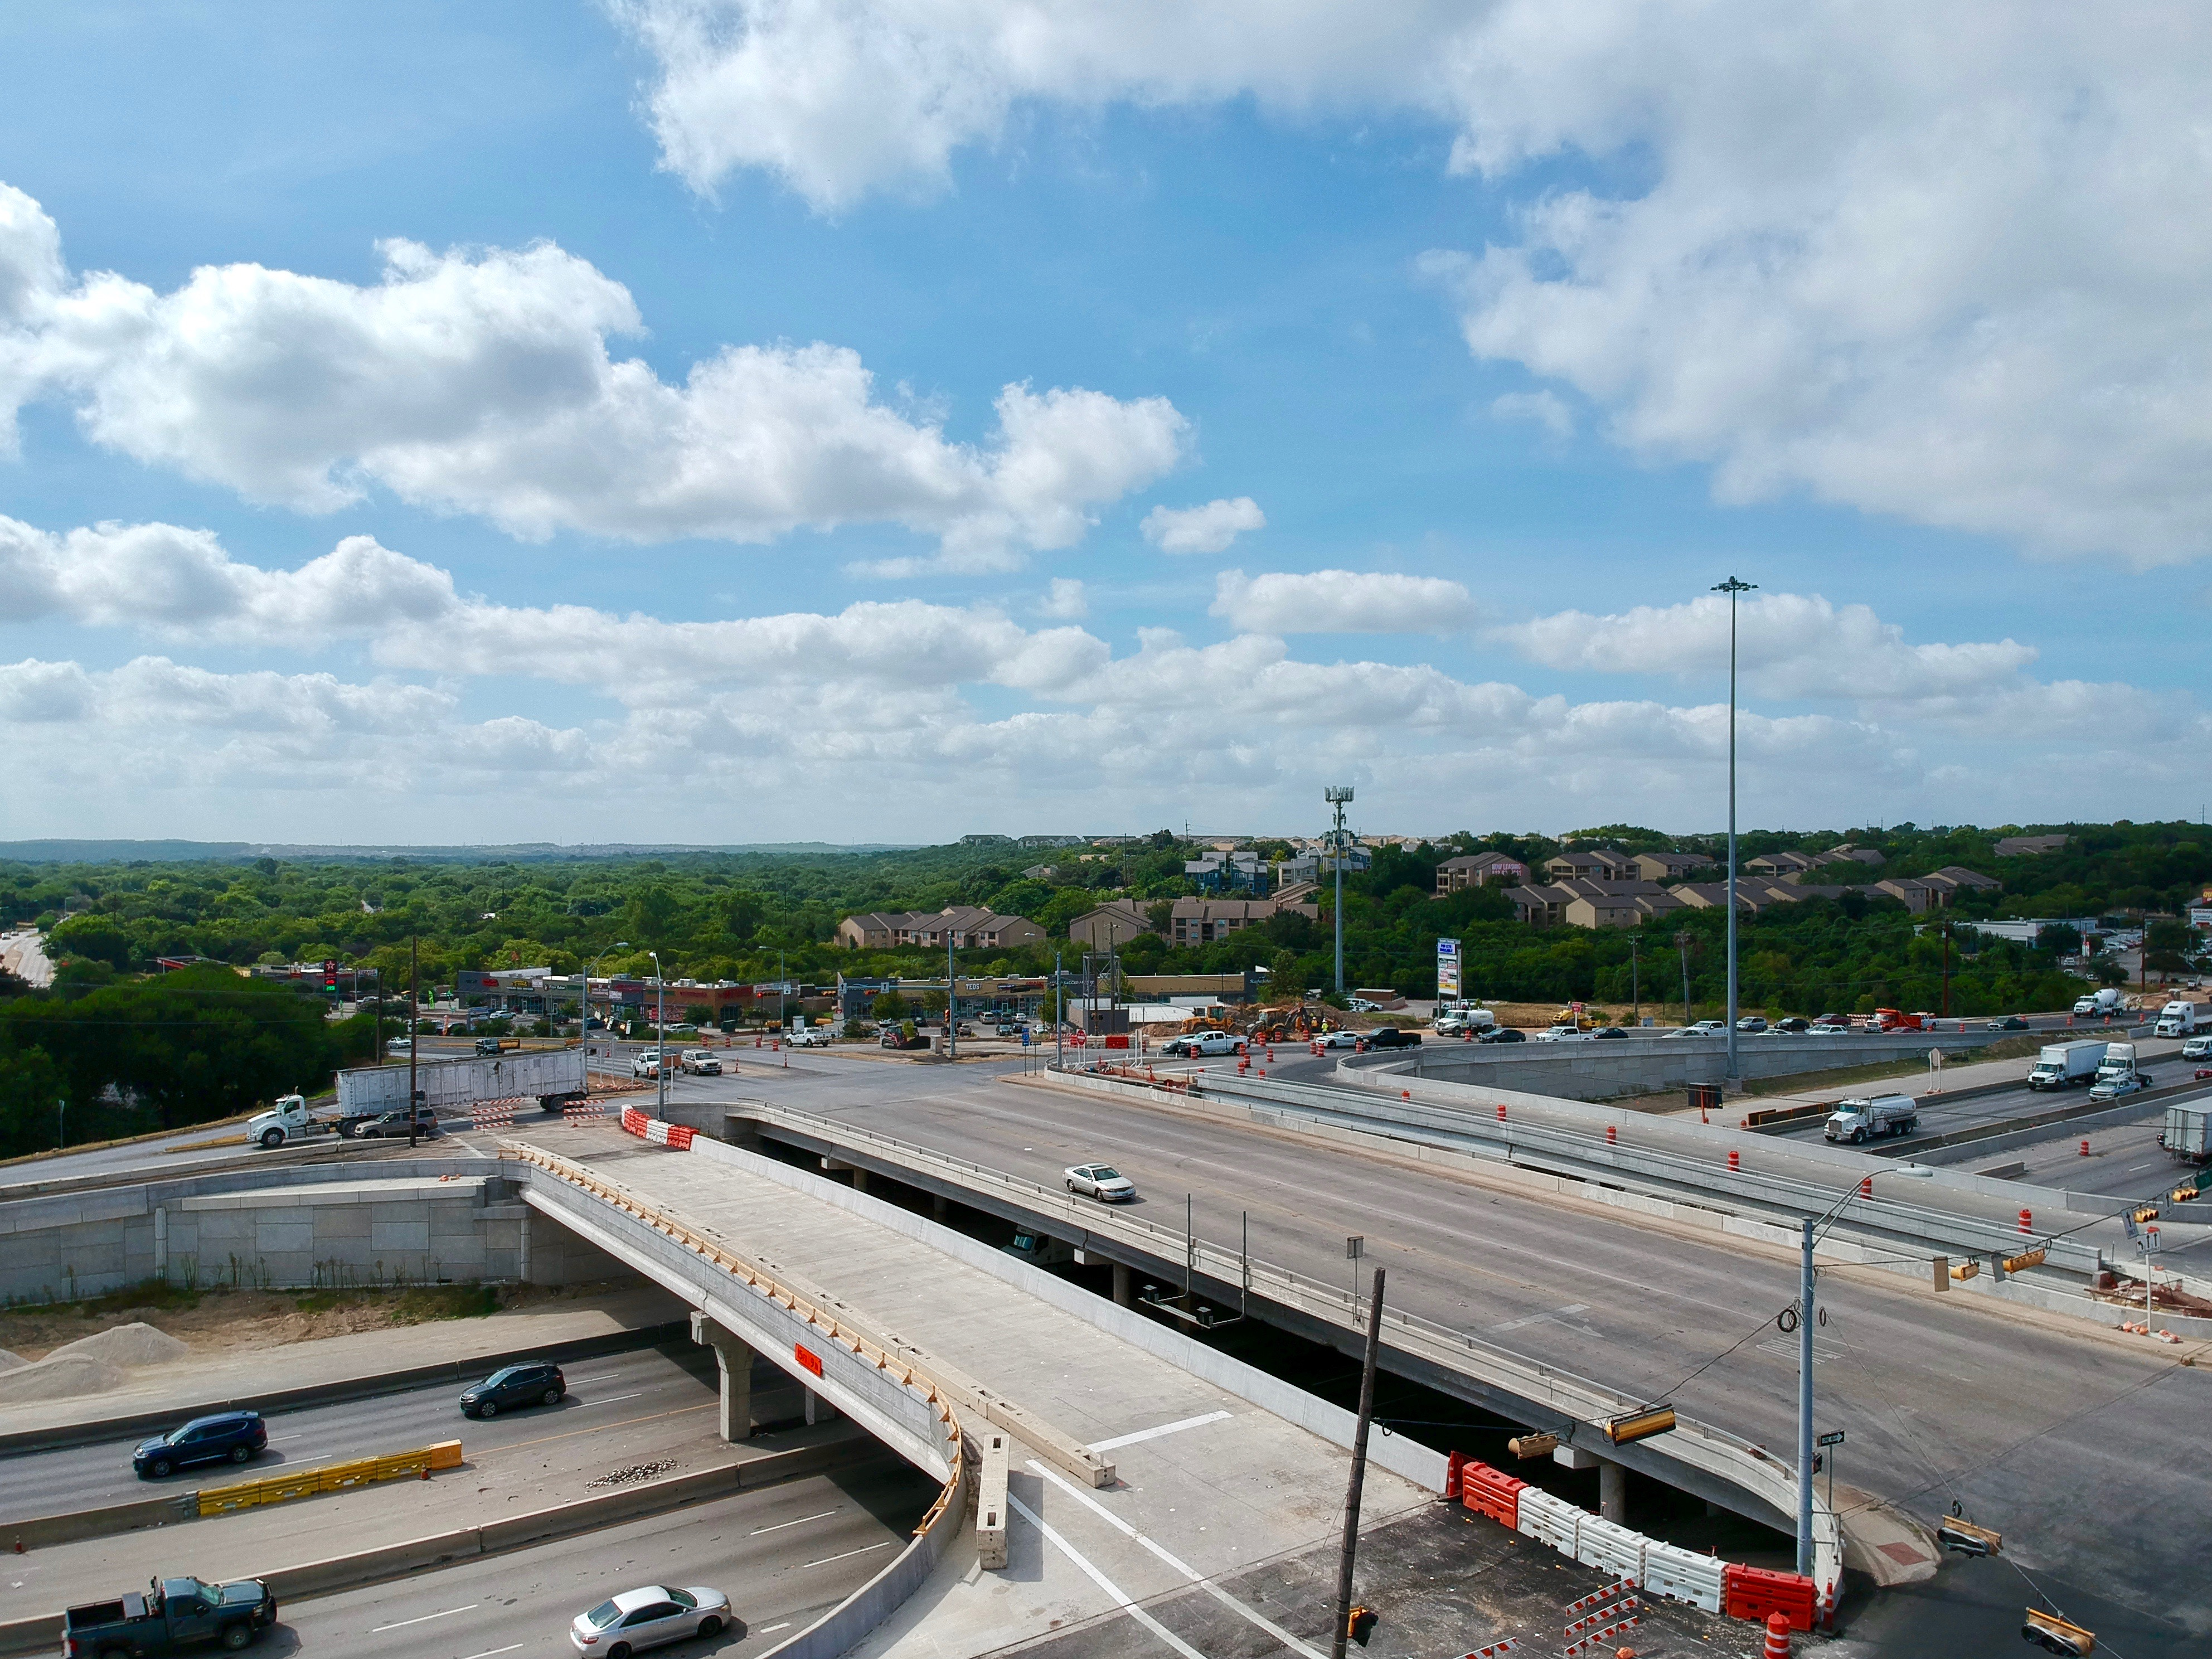 I-35 from Stassney Lane to William Cannon Drive